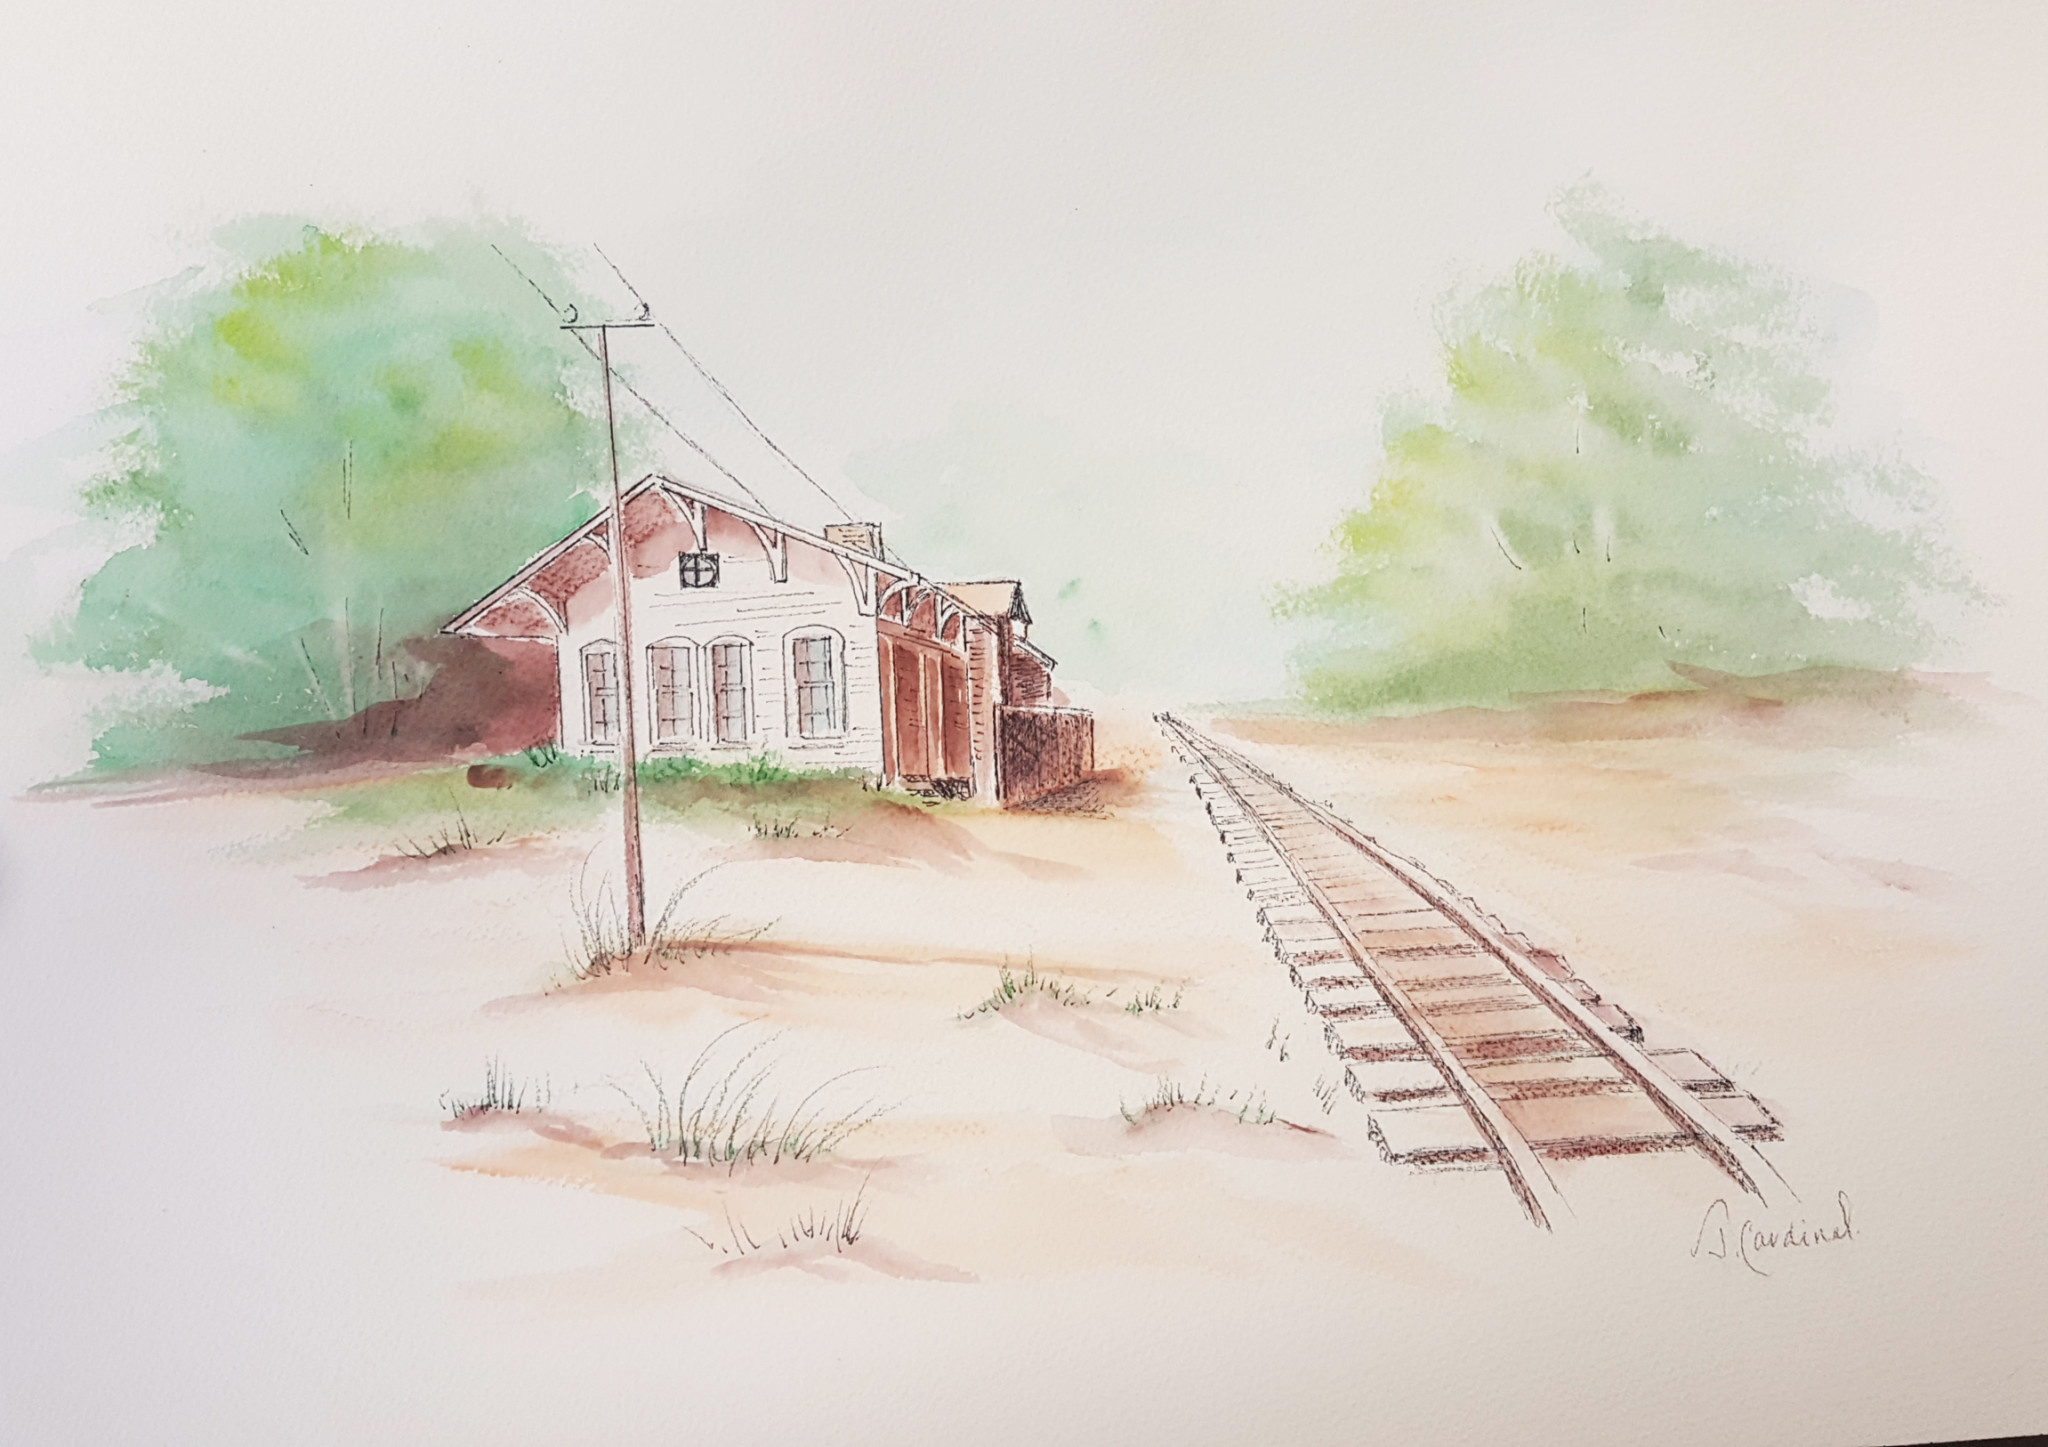 ART CLASS - BEYOND THE TRACKS WITH JANET CARDINAL, AUGUST 13, 6 - 9PM